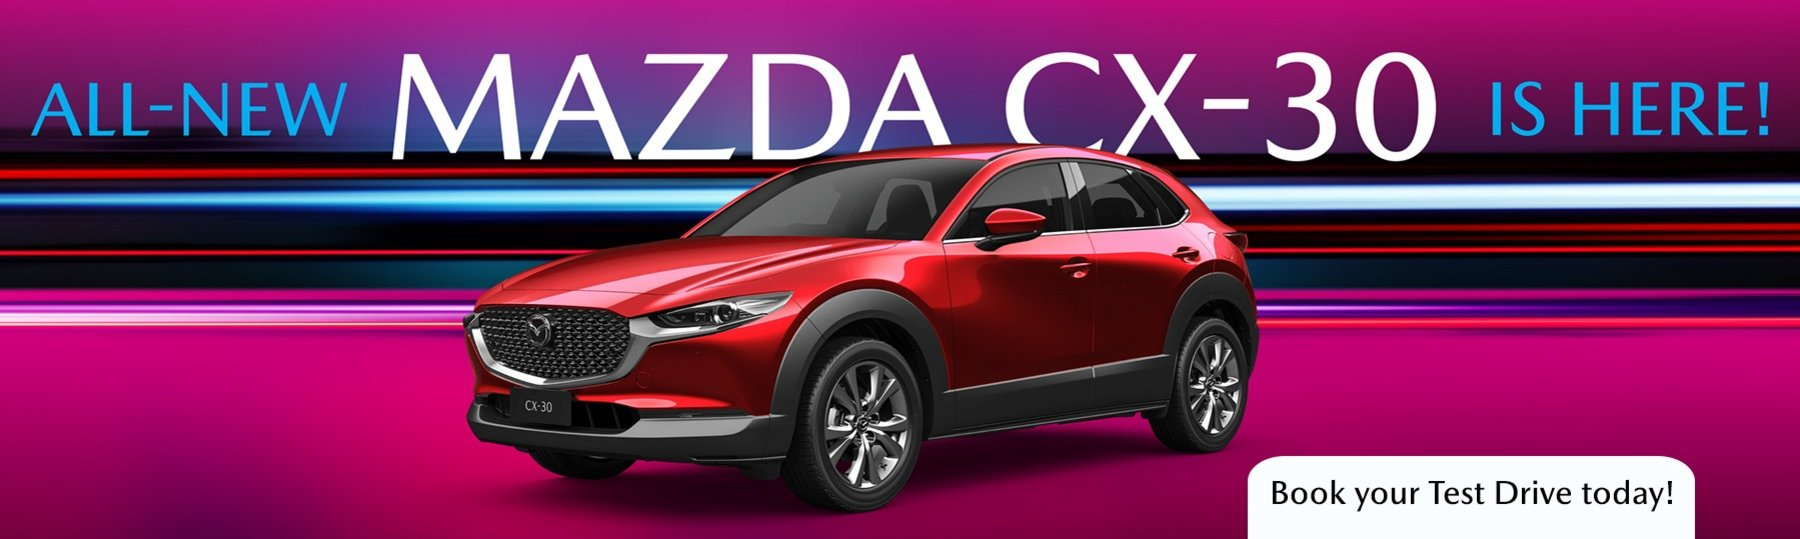 The All-New Mazda CX-30 is here!